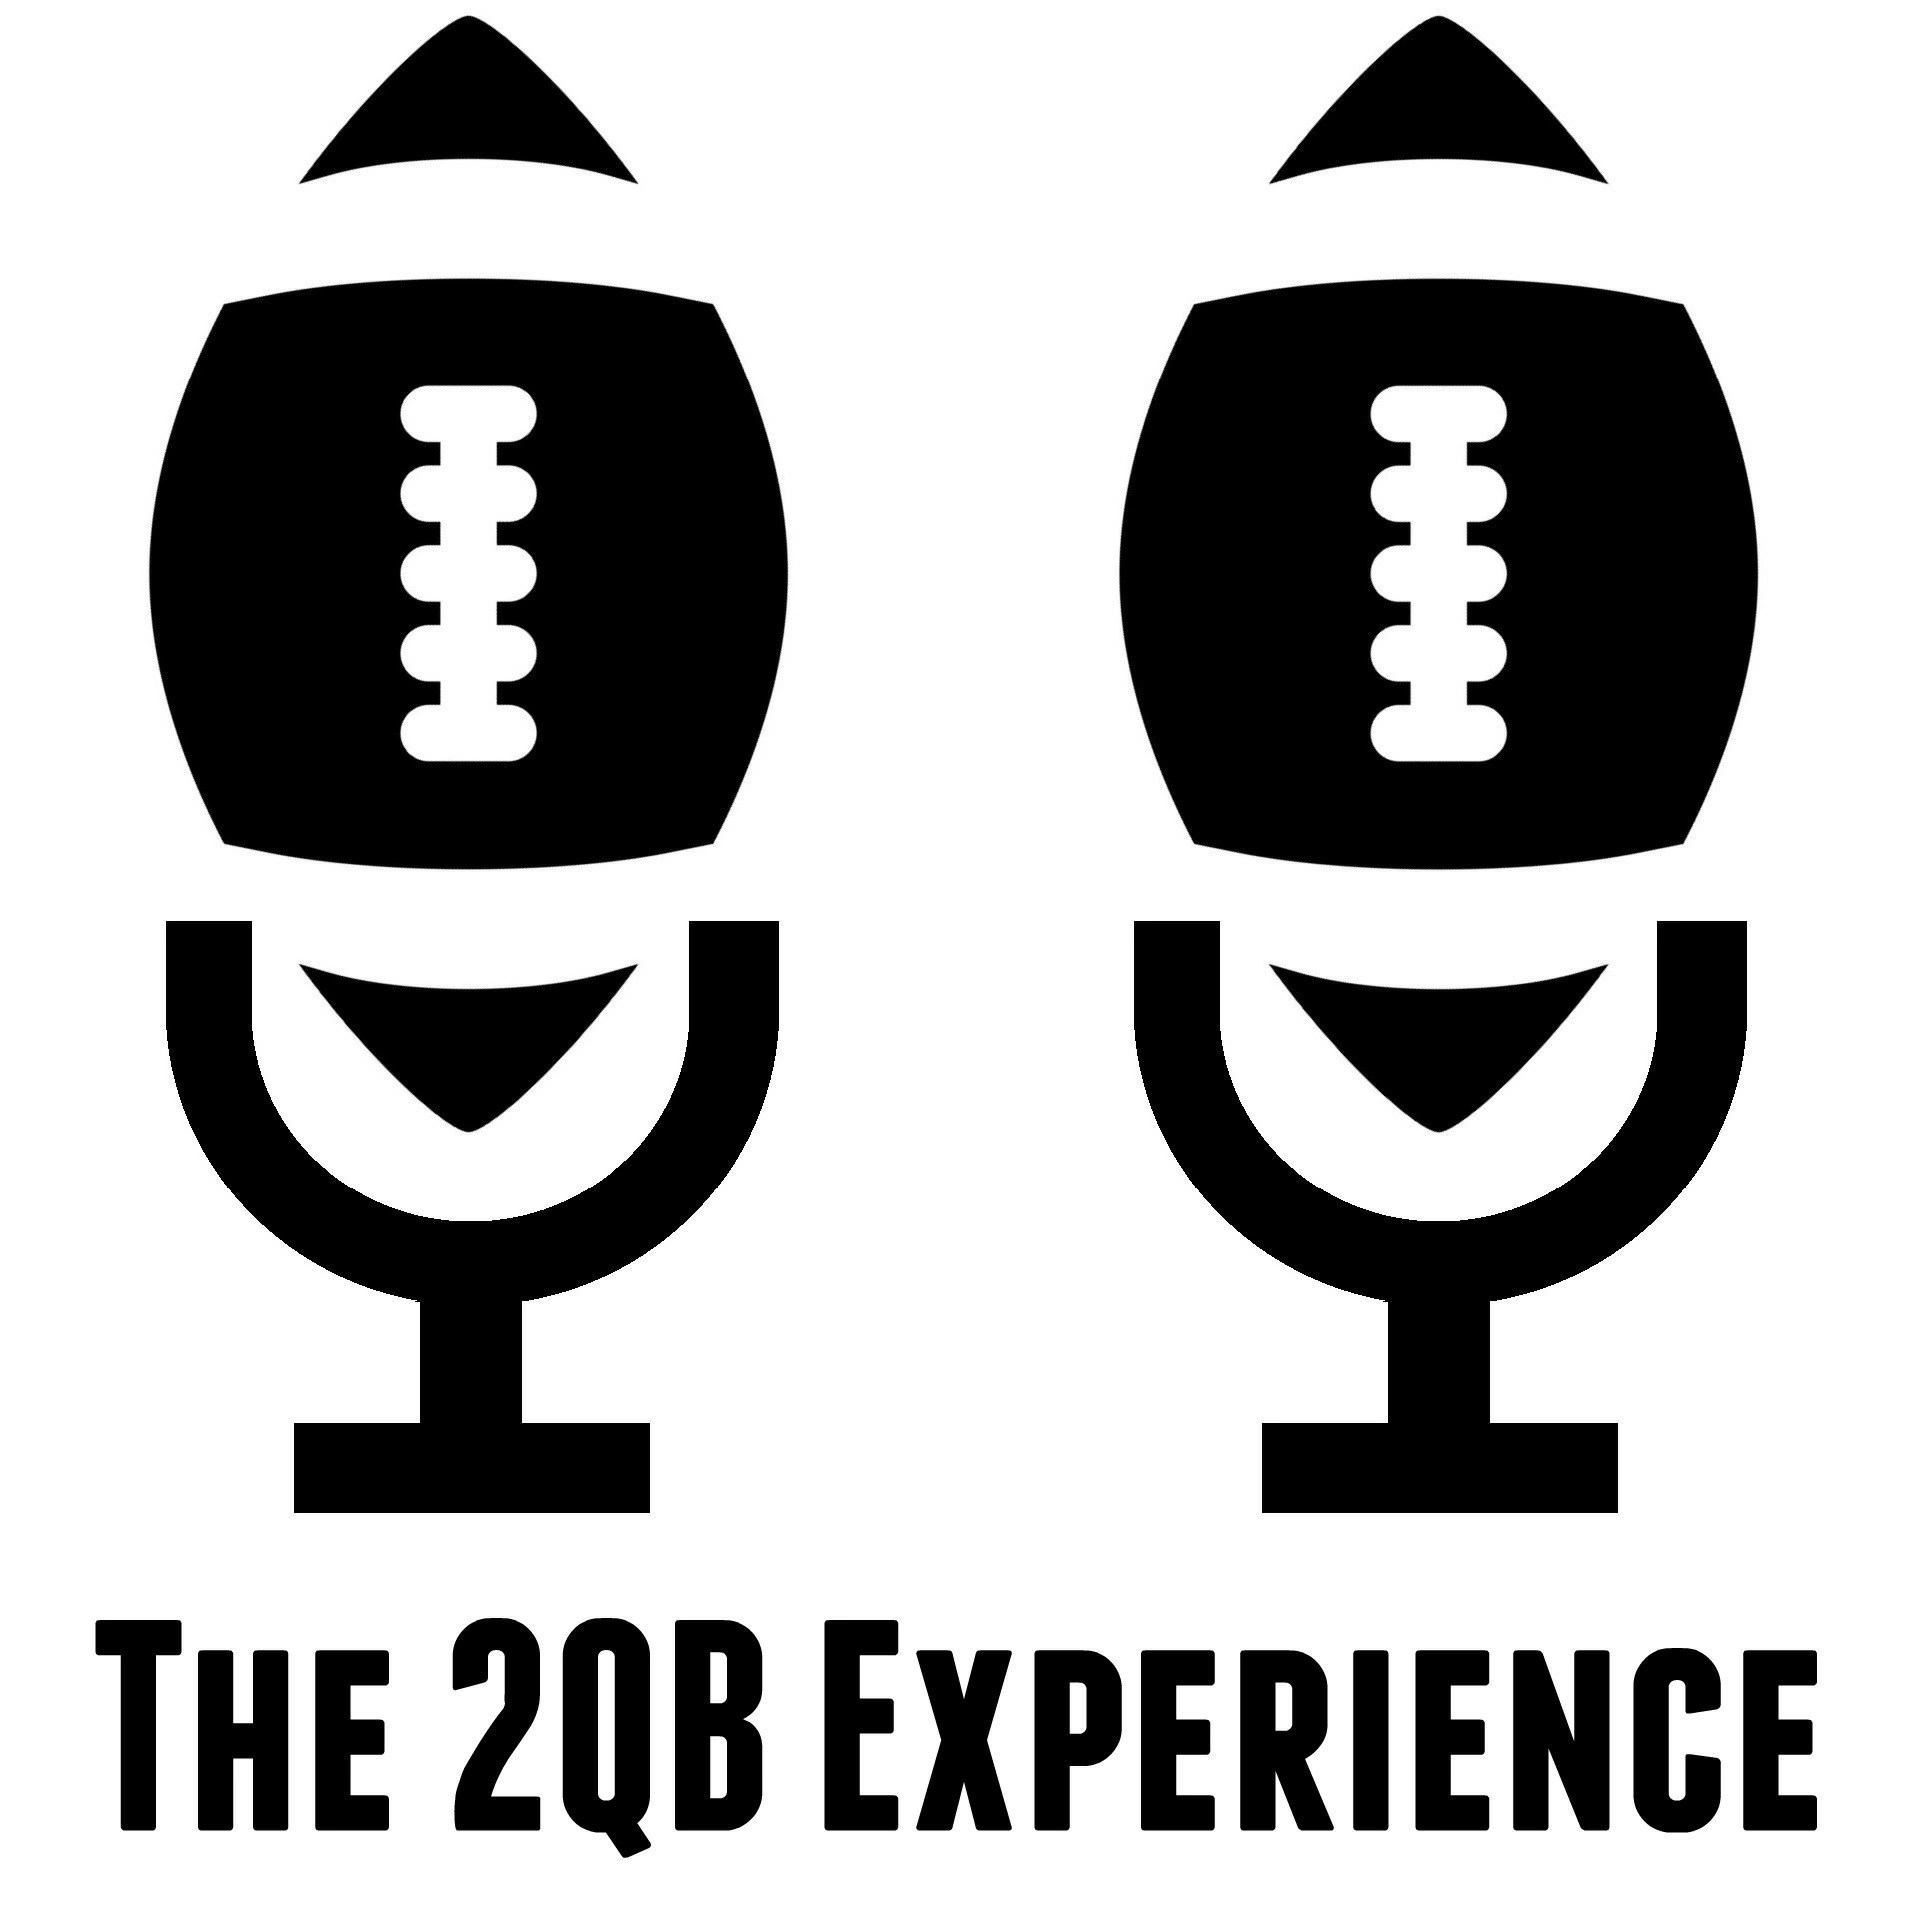 Tagliere Tiers The 2qb Experience 047 Rankings Insights With Mike Tagliere